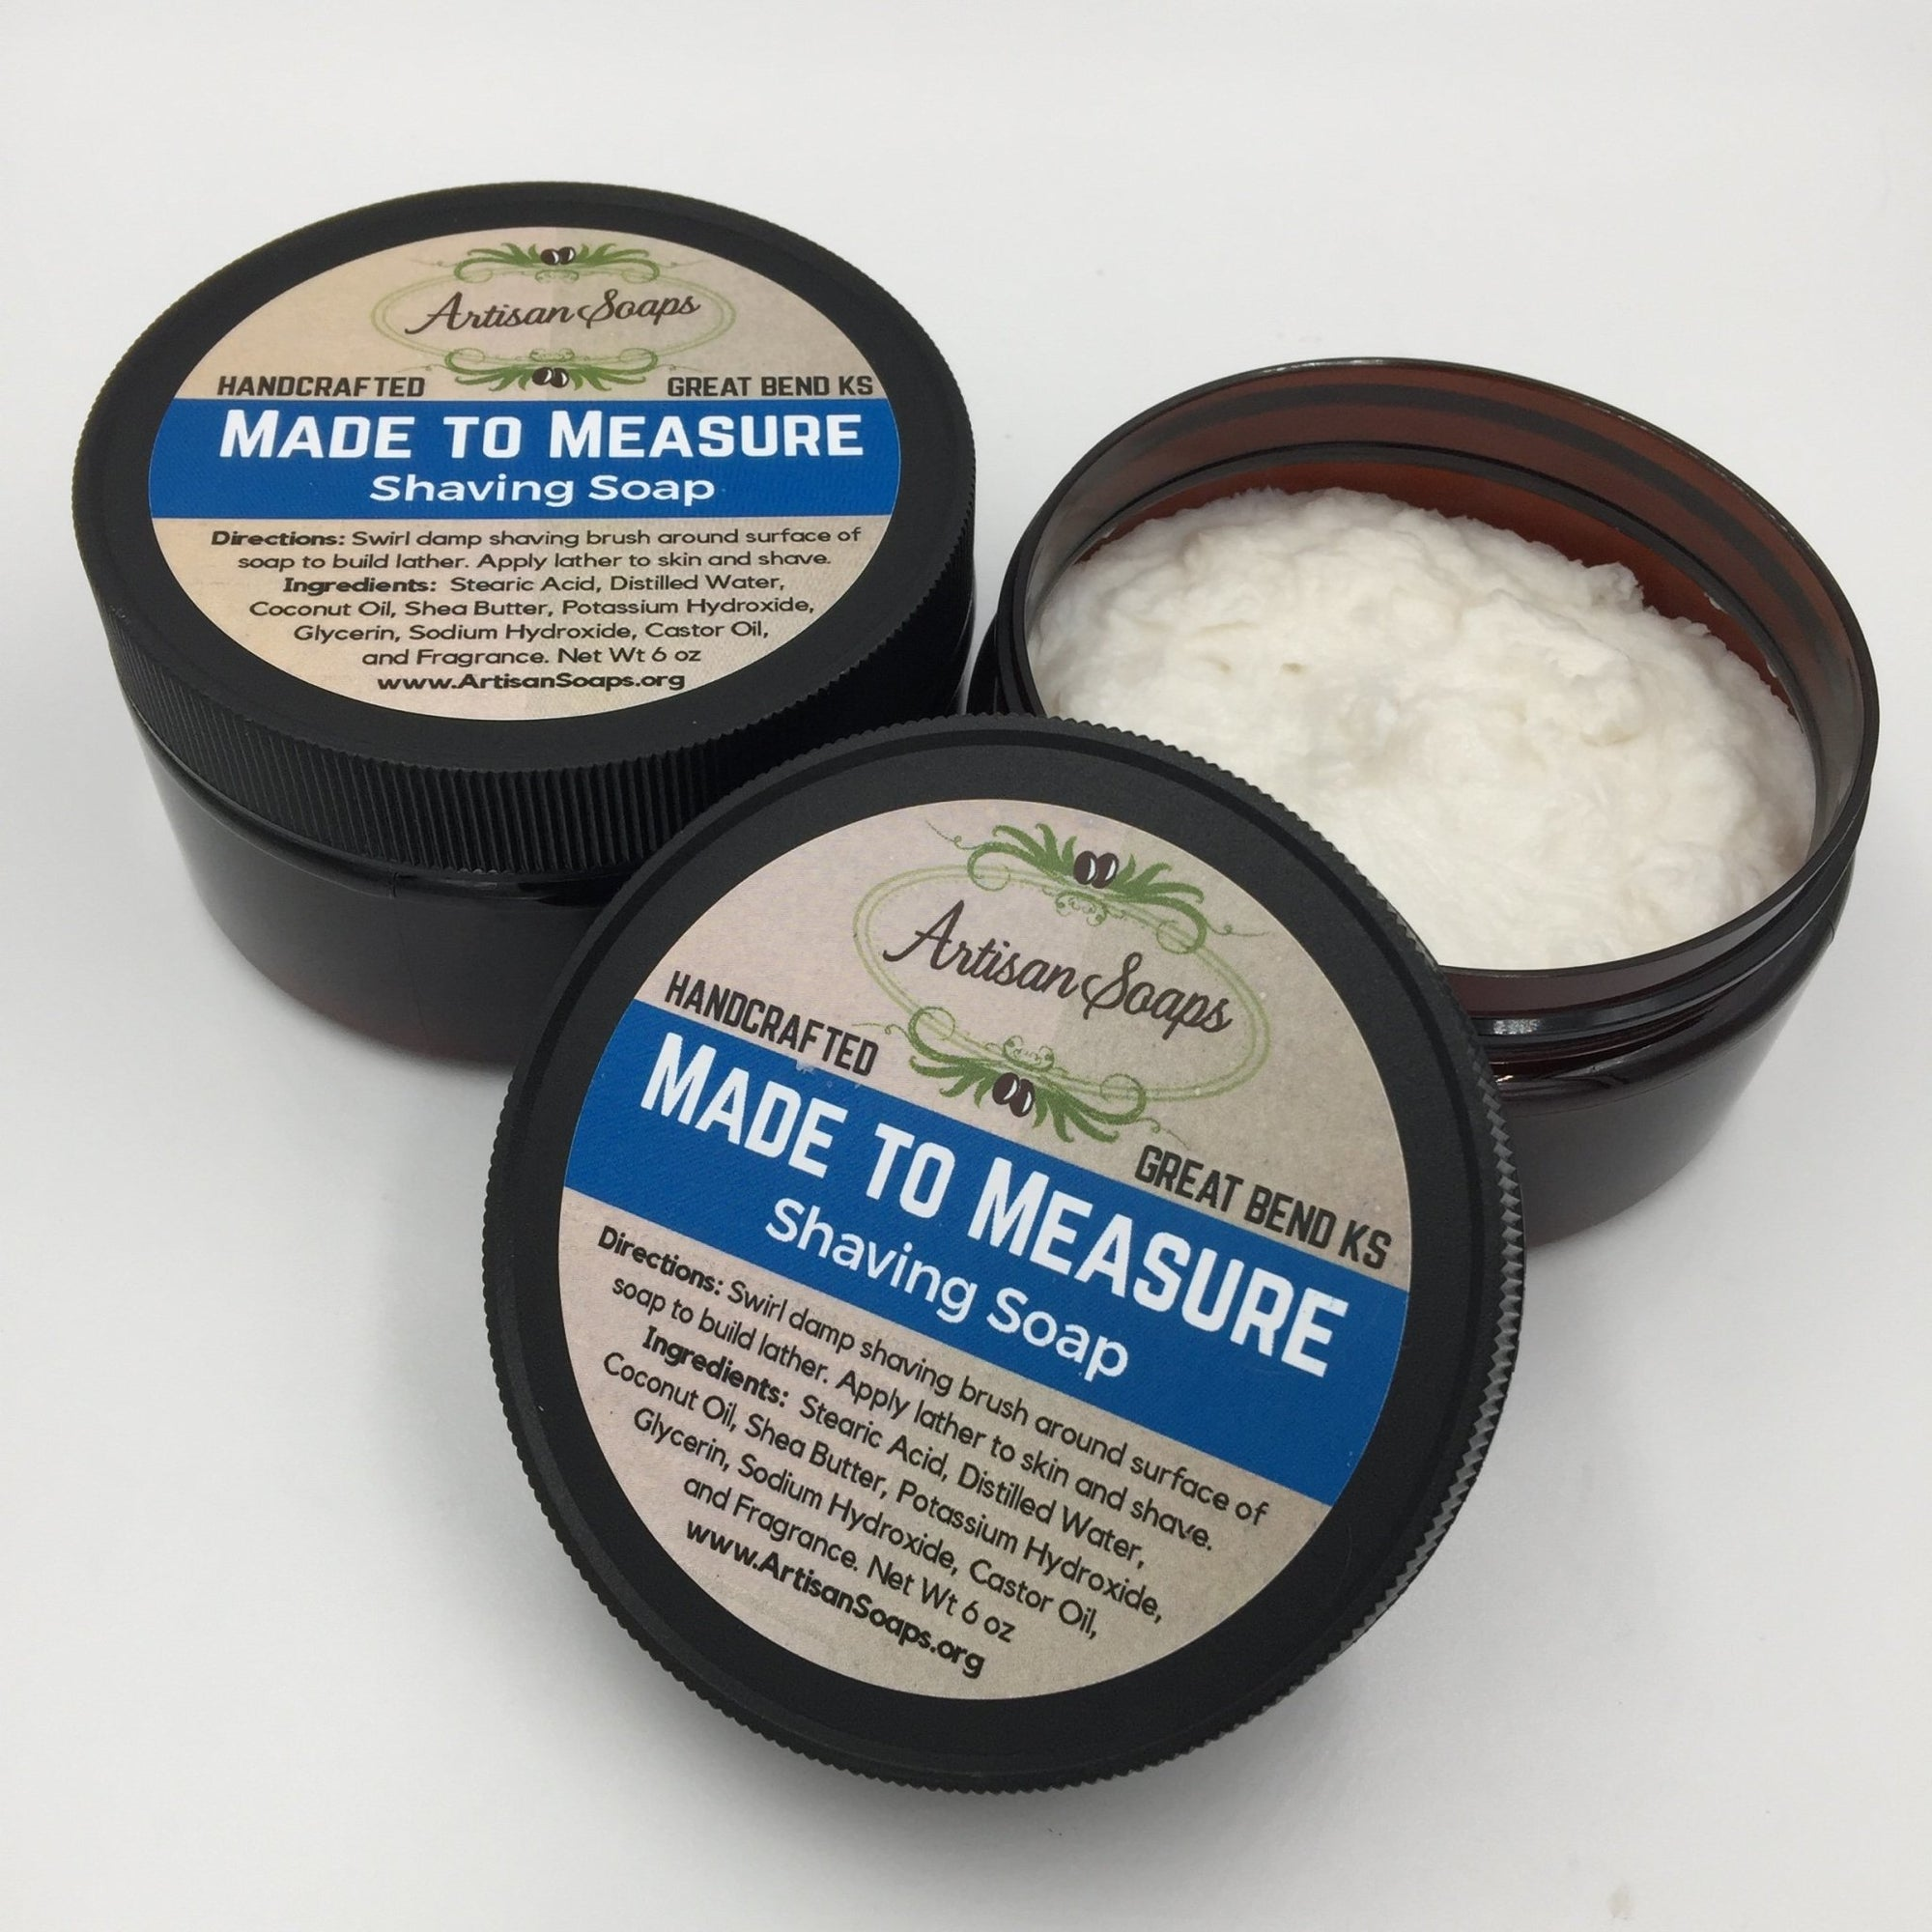 Made to Measure Shaving Soap - Artisan Soaps